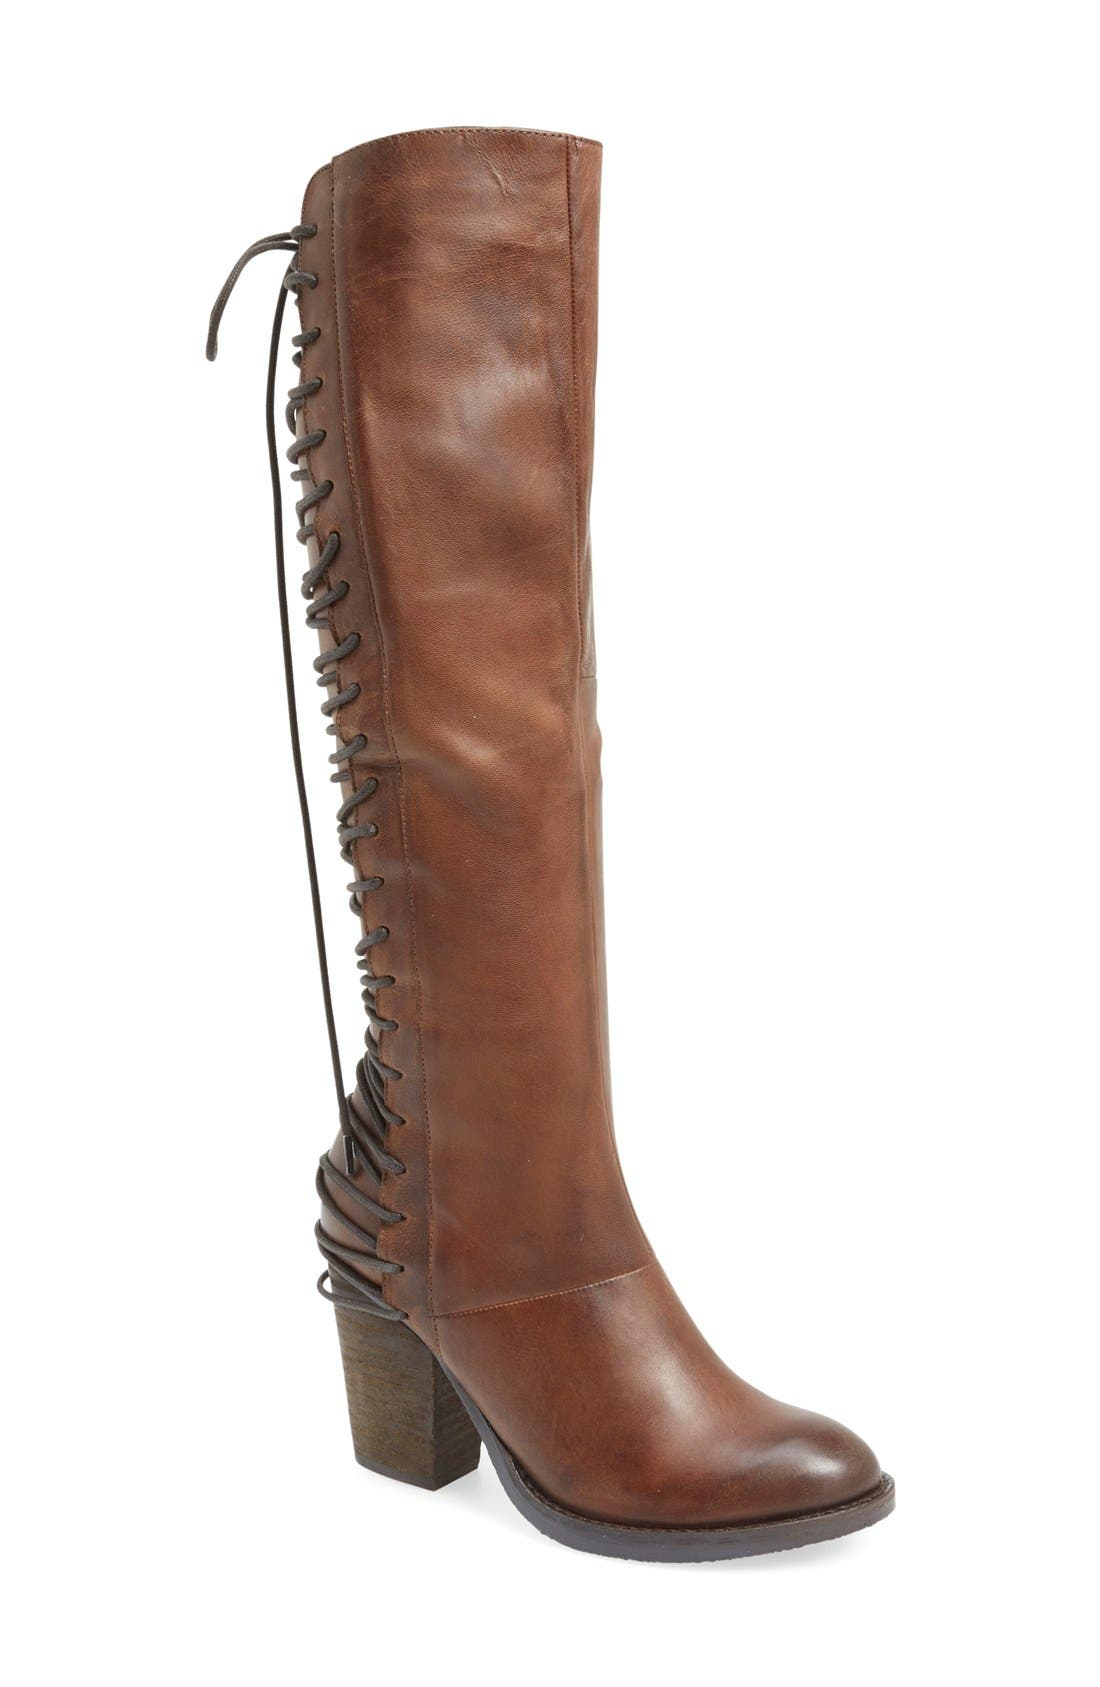 Alternate Image 1 Selected - Steve Madden 'Rikter' Knee High Boot (Women)